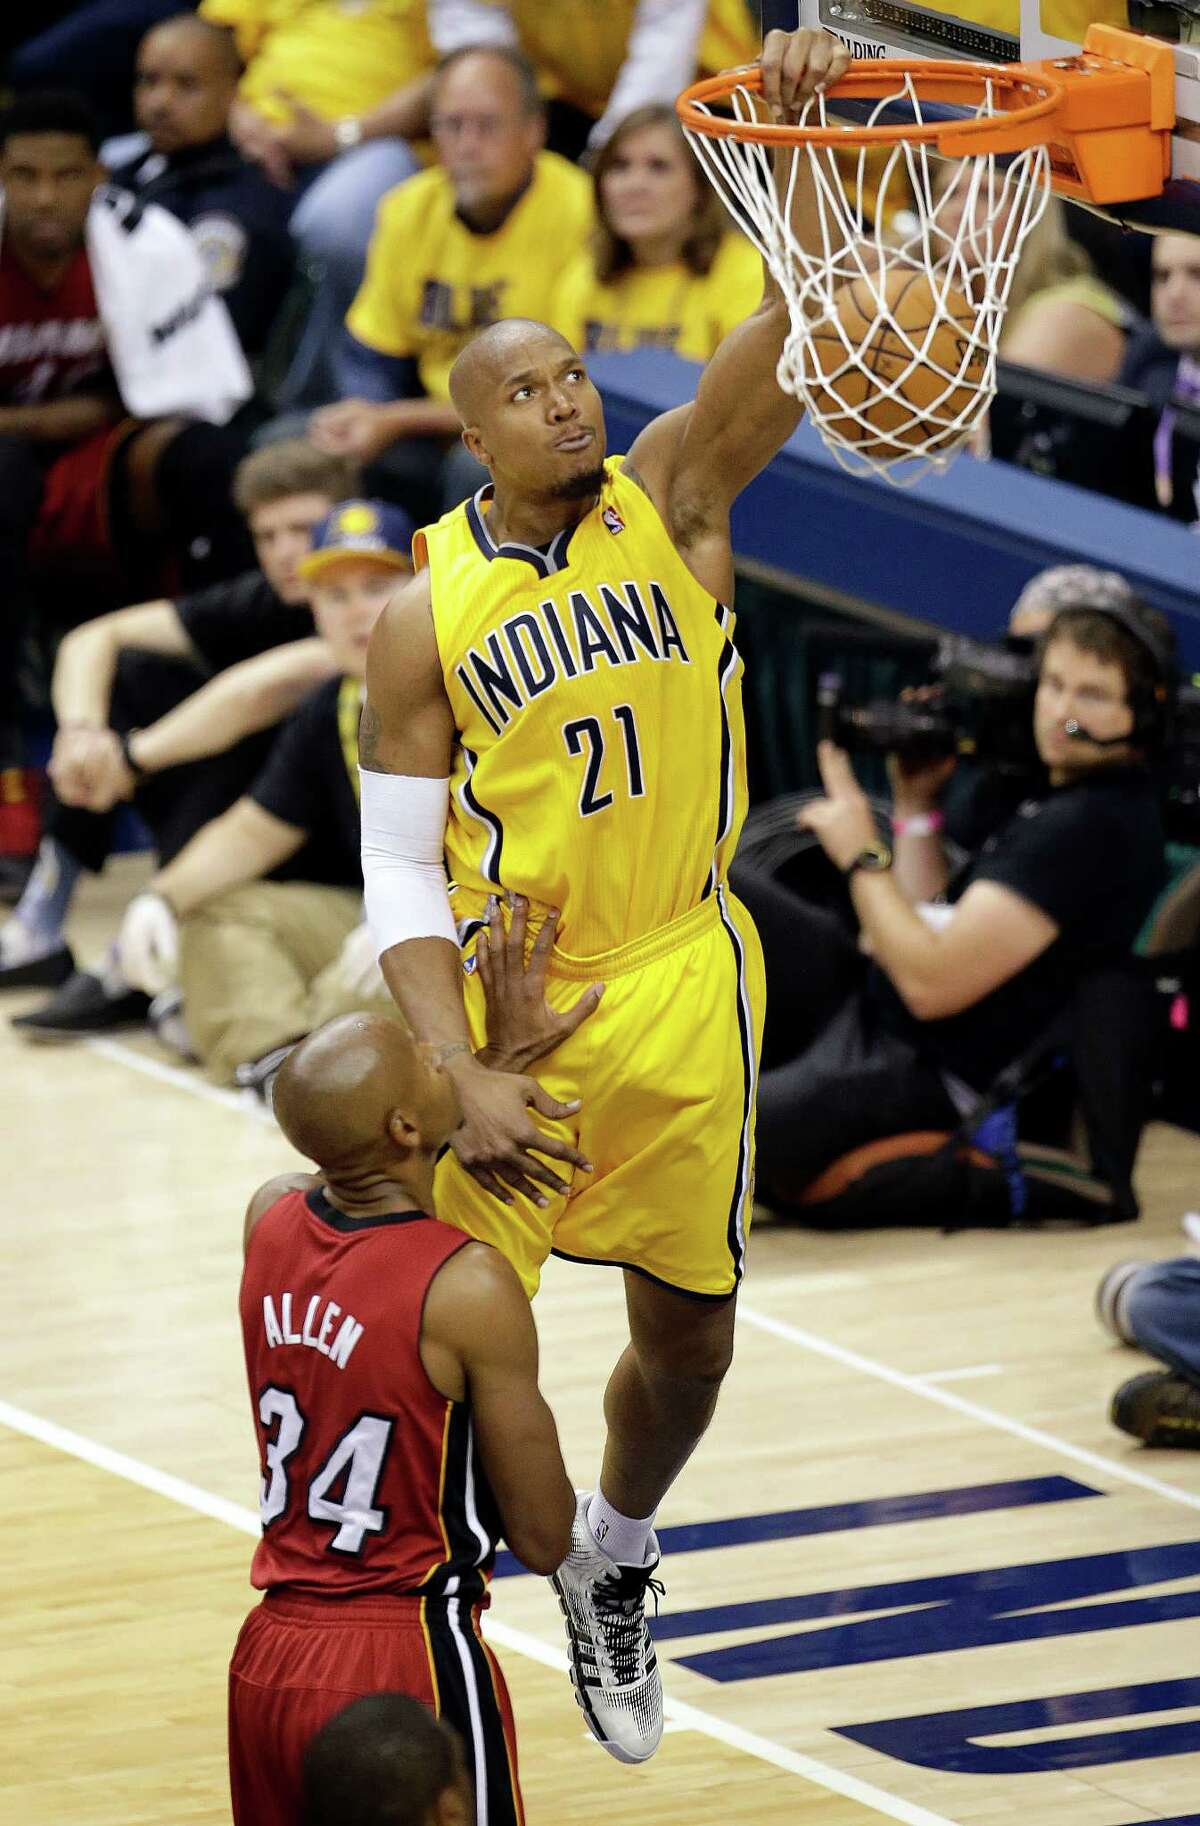 Worst/cheapest seat:$12.85 David West and the Indiana Pacers open against the Philadelphia 76ers on Oct. 29.